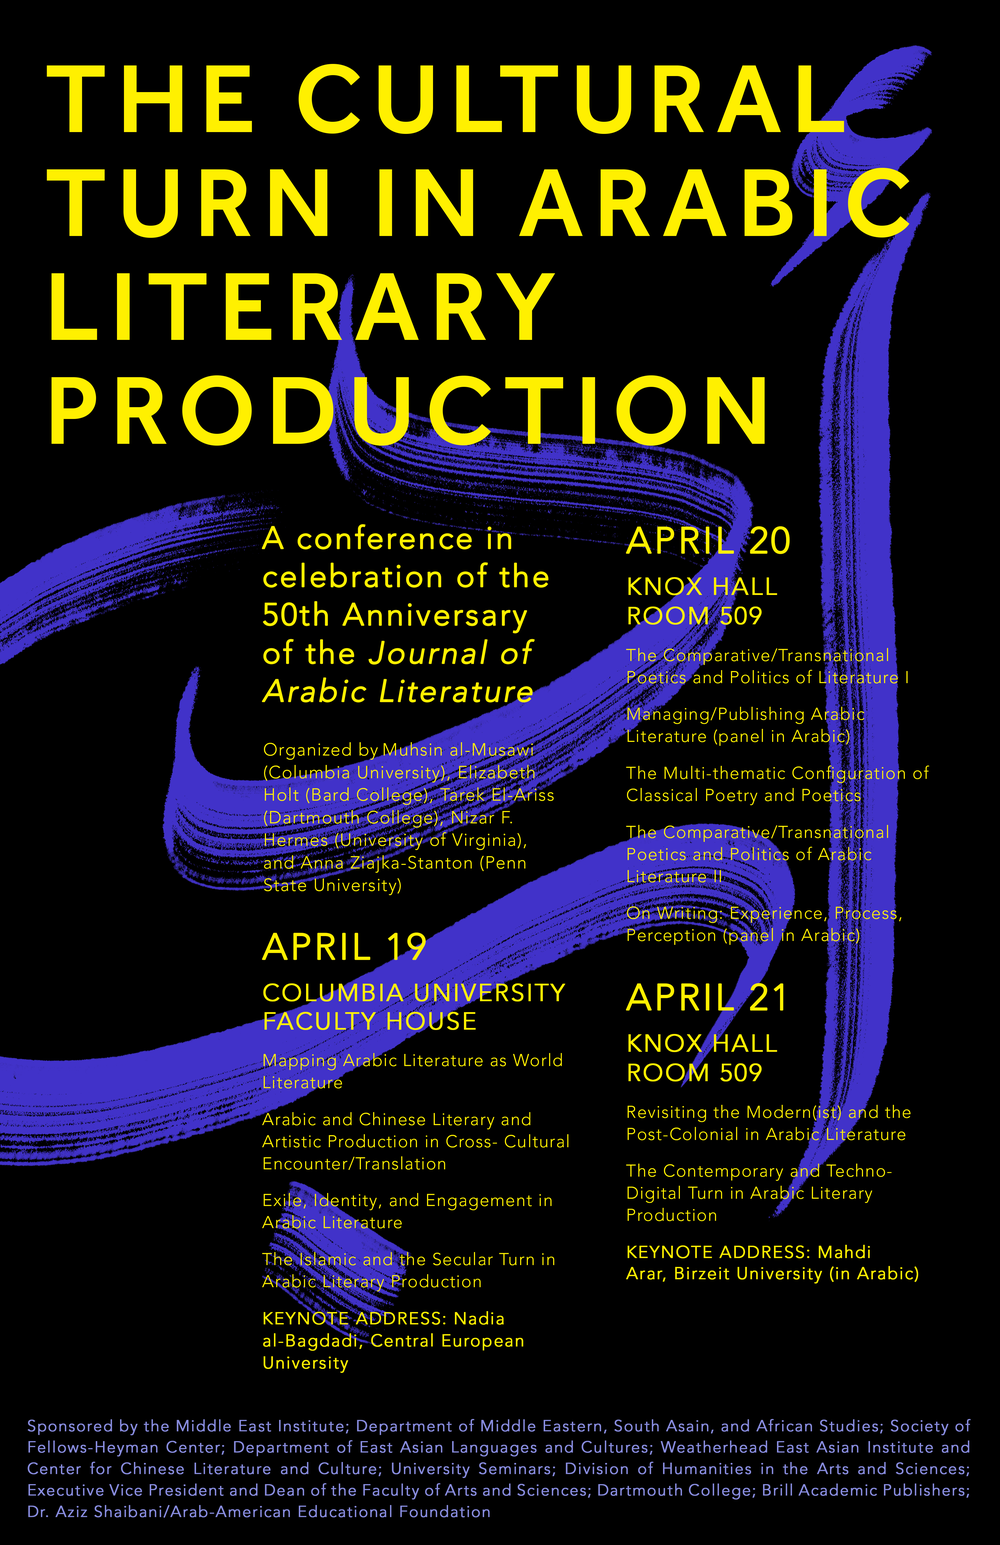 ARABIC LITERATURE CONFERENCE POSTER 03 08 2019 DIGITAL.png